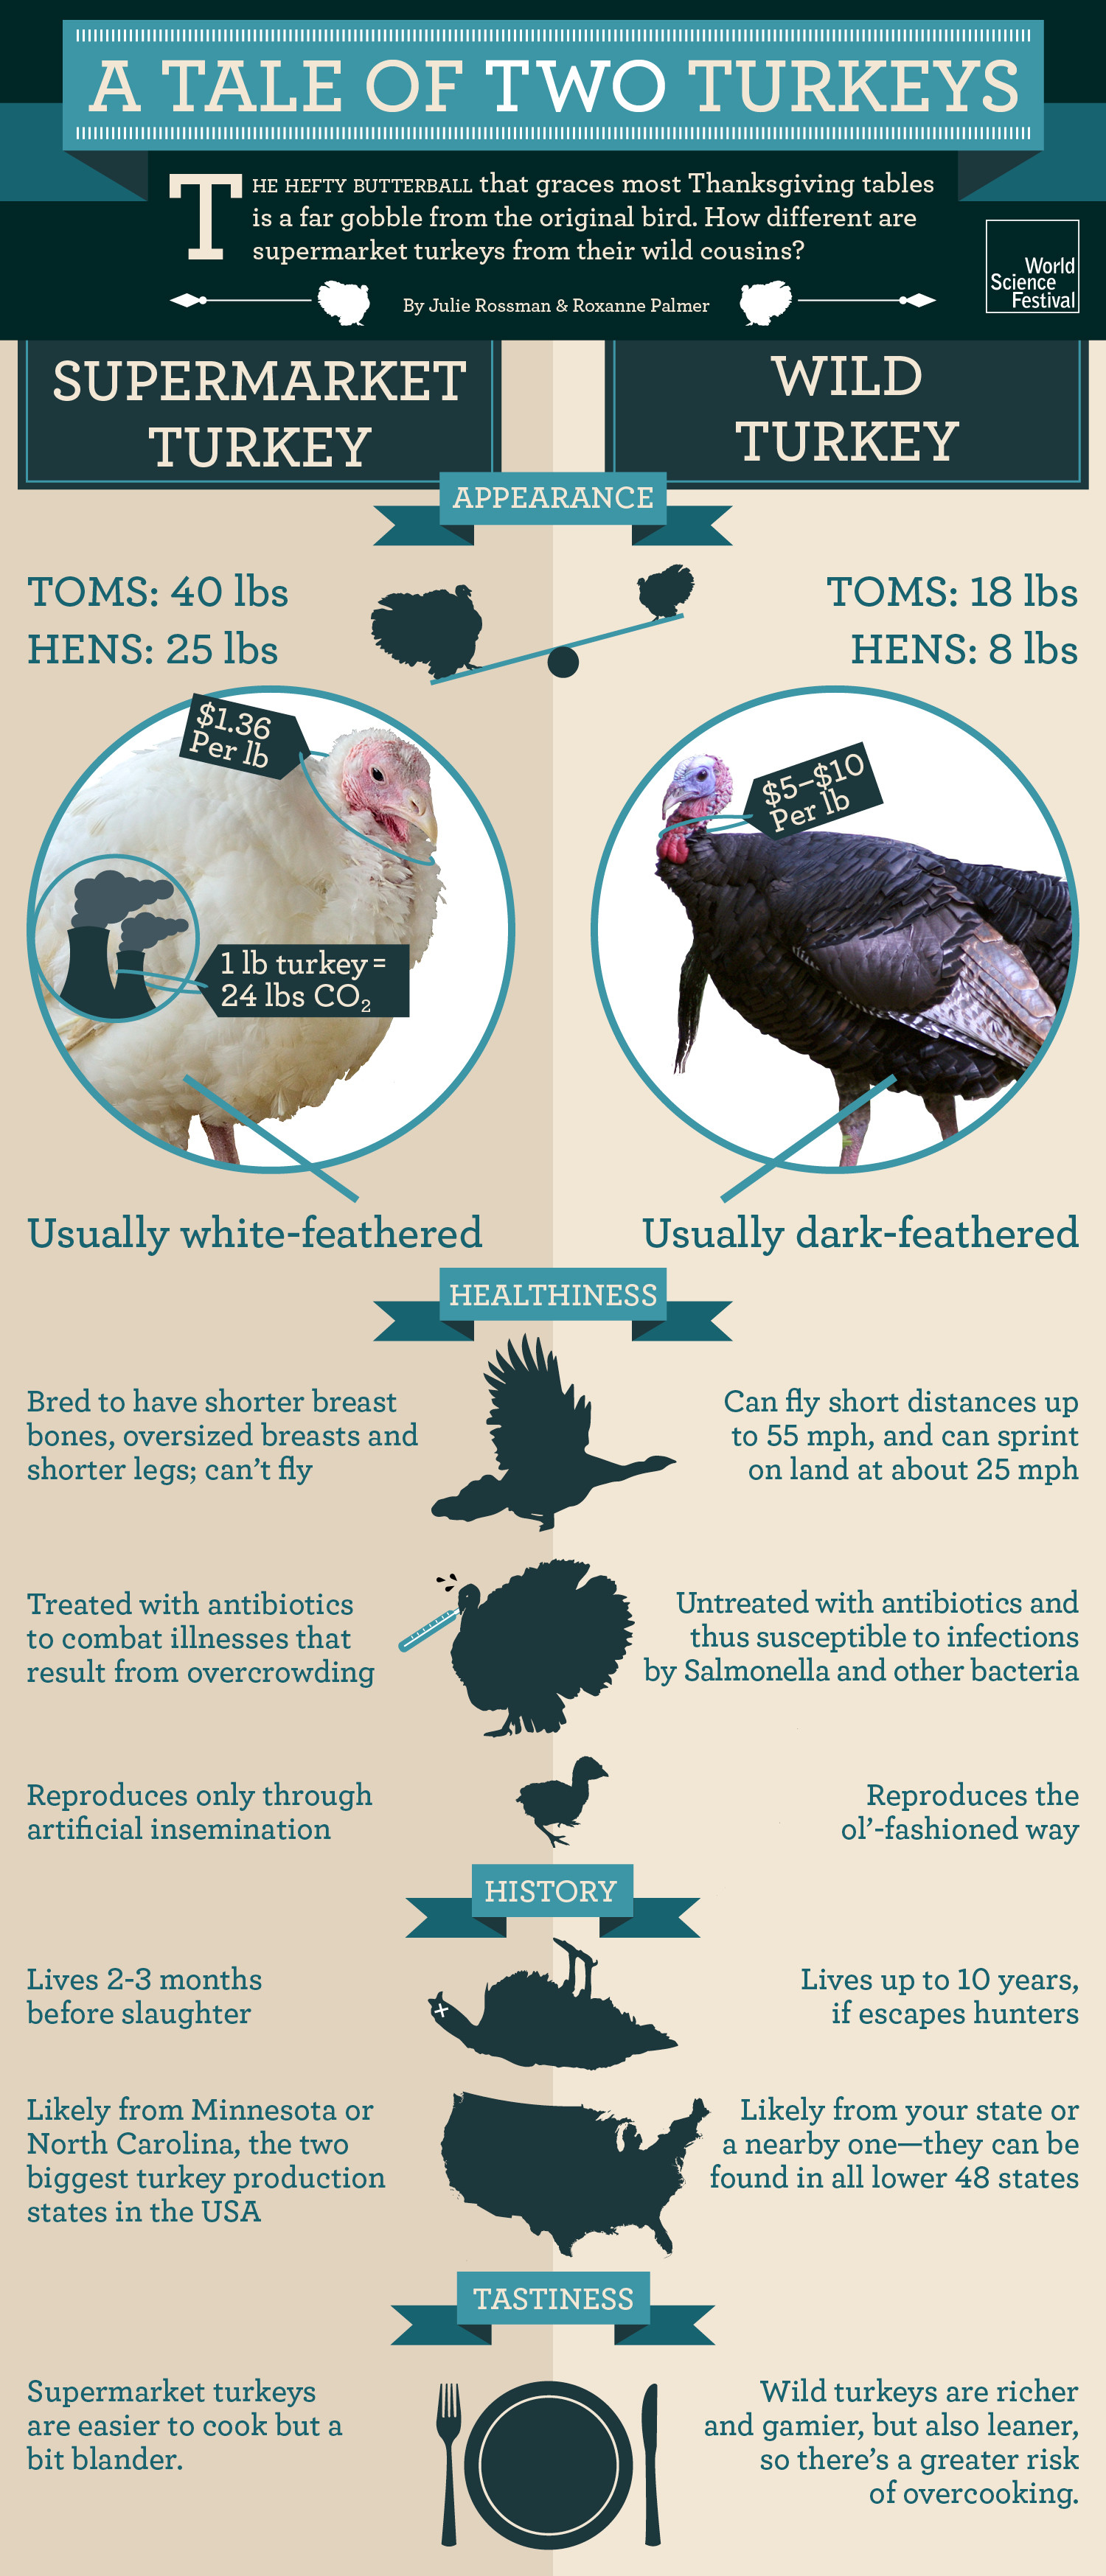 A Tale of Two Turkeys Infographic